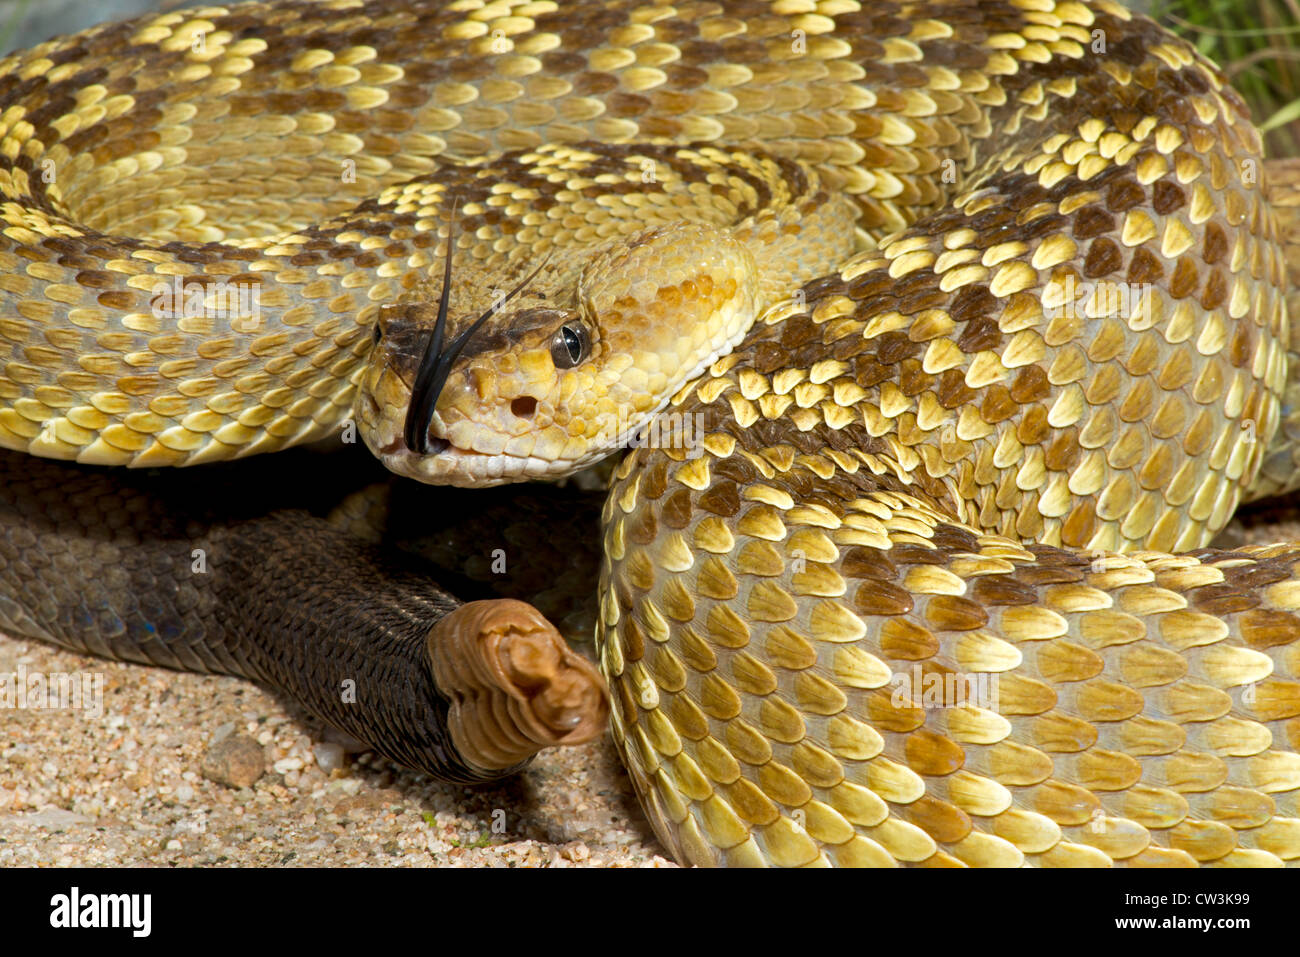 Black-tailed Rattlesnake Crotalus molossus molossus Tucson, Pinal County, Arizona, United States 12 August Adult Stock Photo